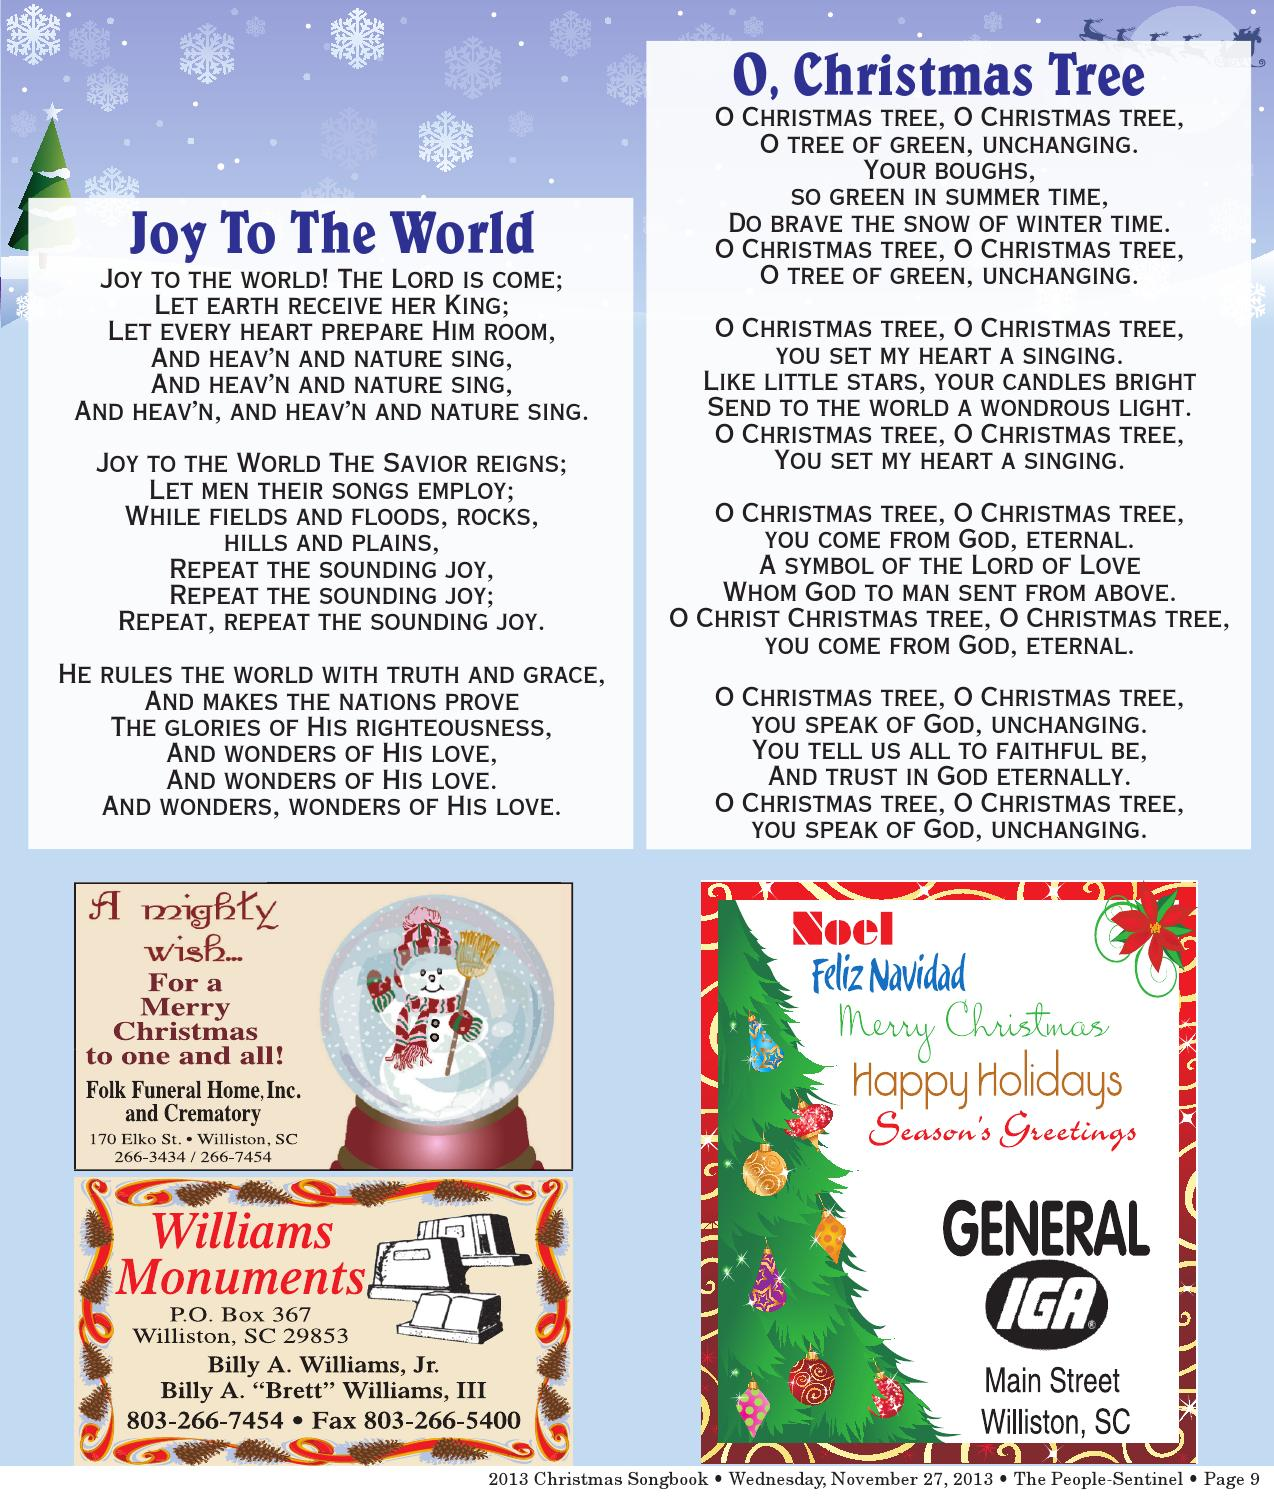 Christmas Songbook 2013 By The People Sentinel Issuu